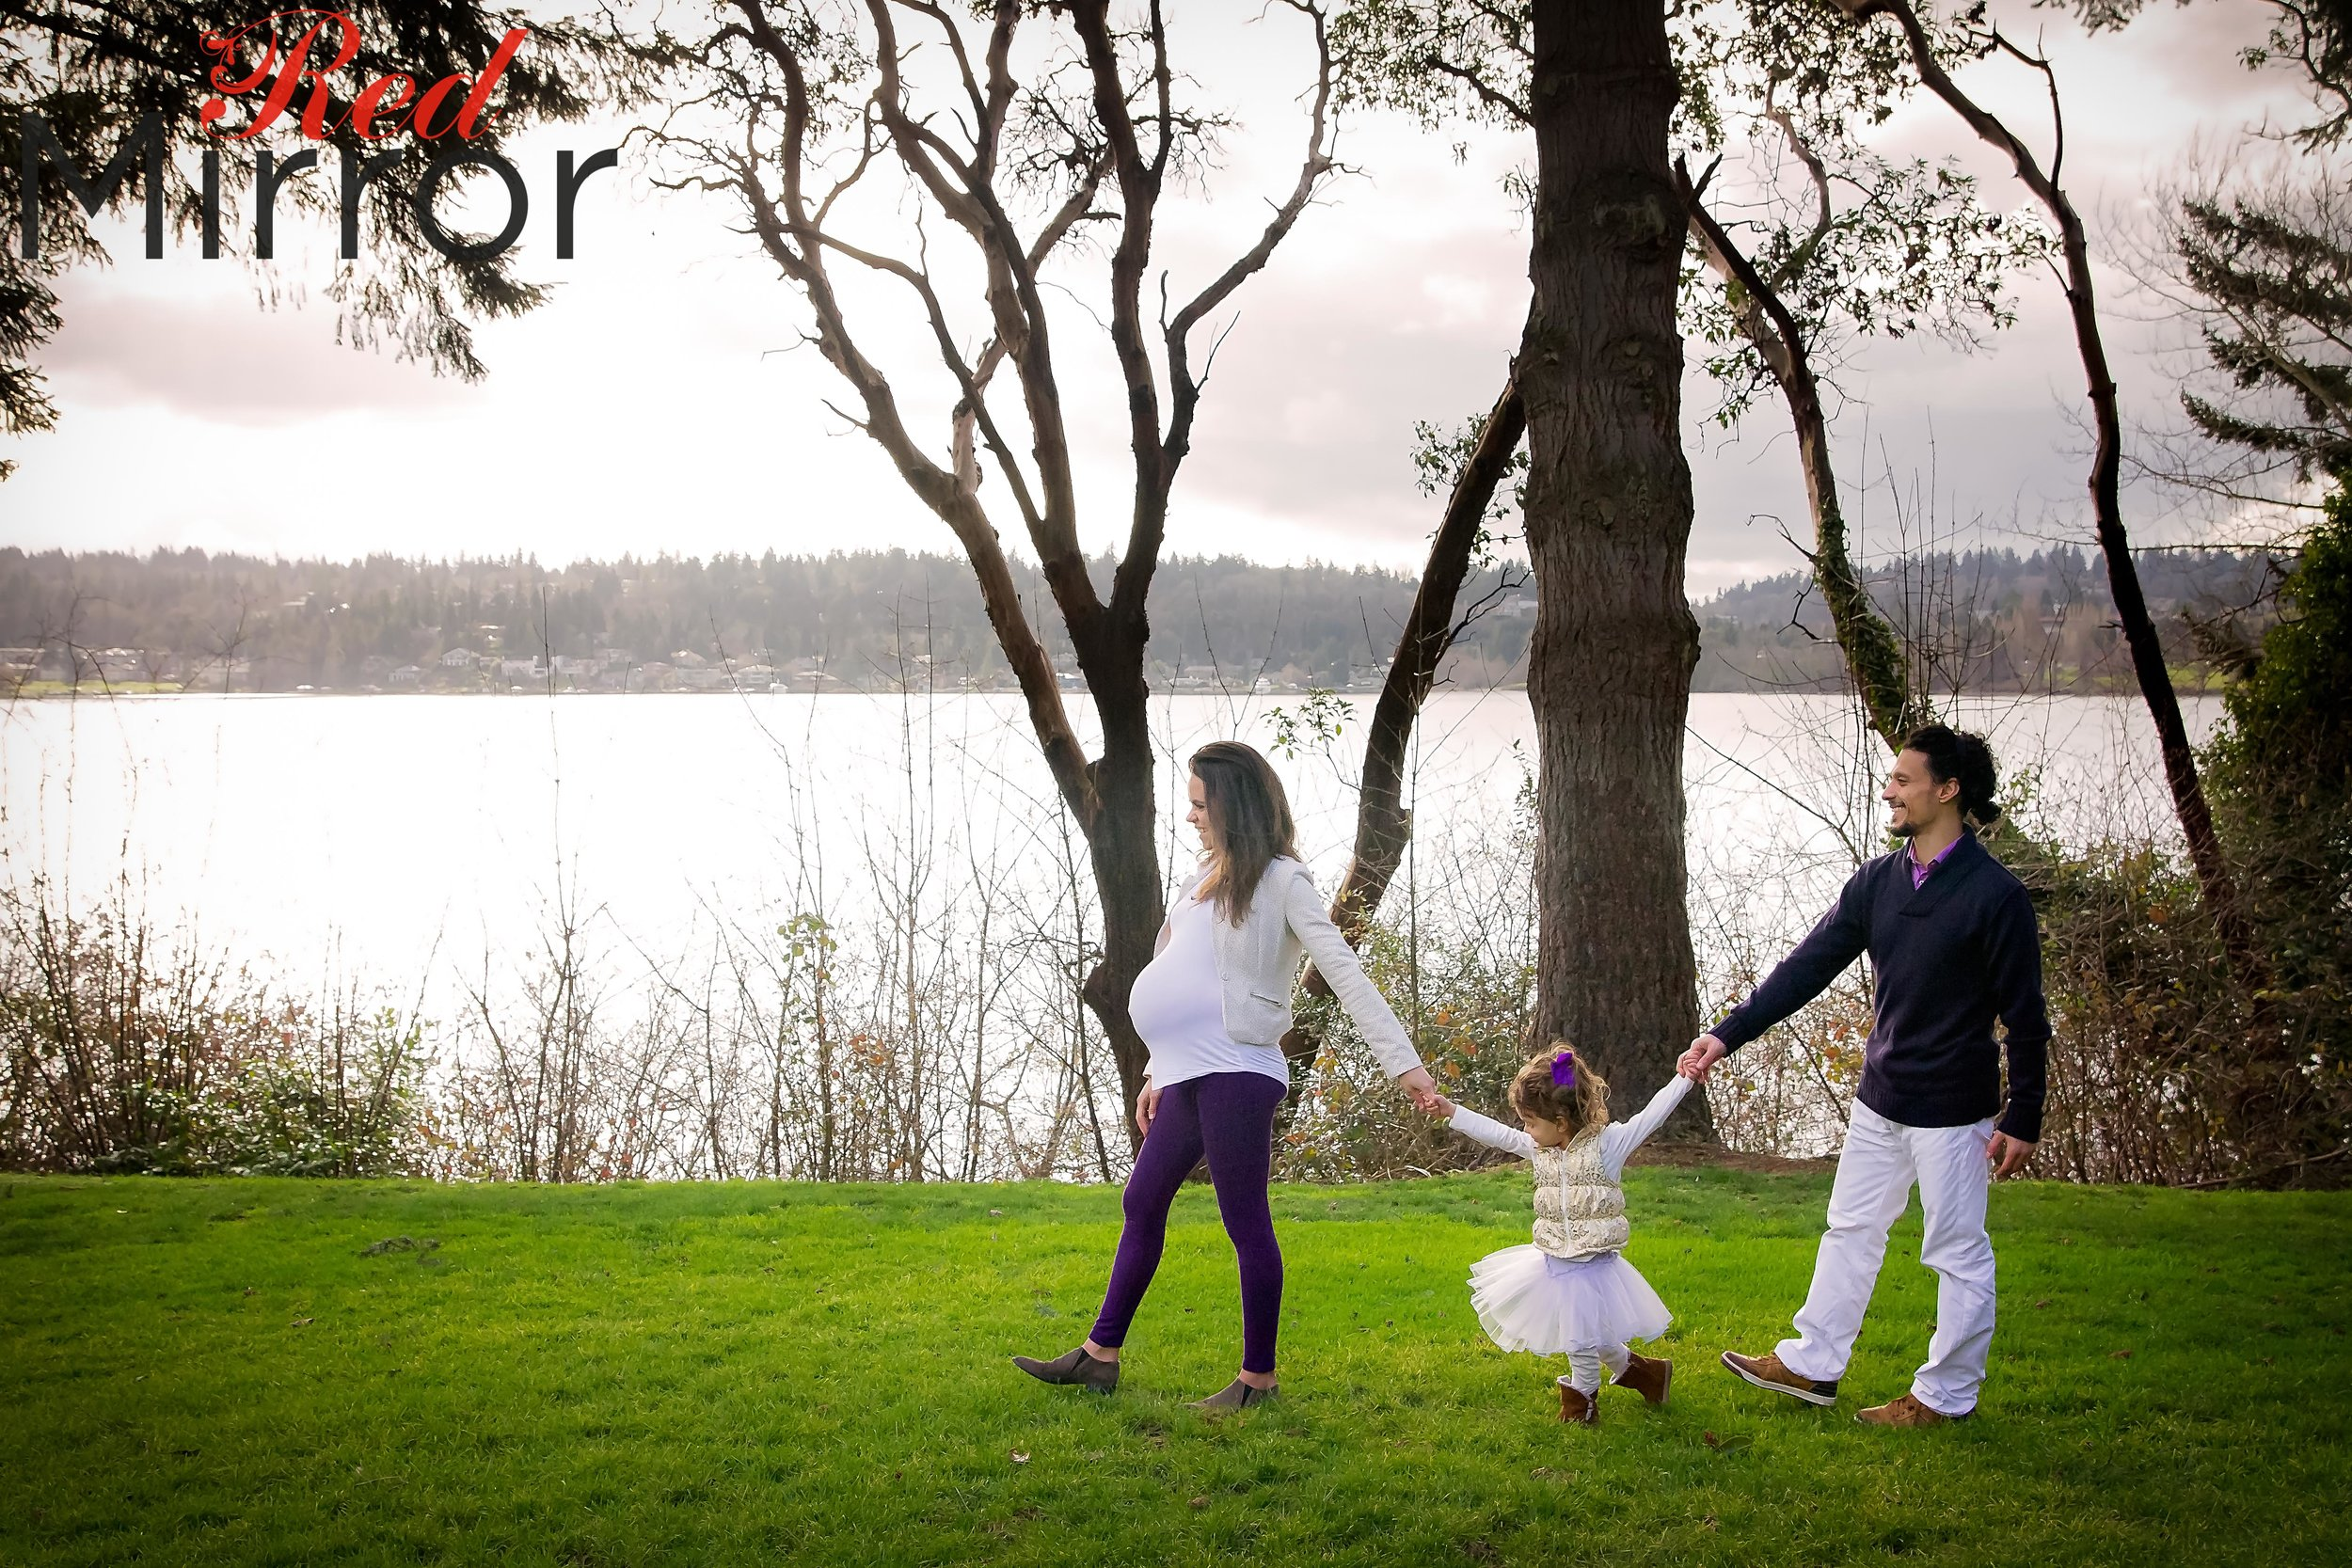 Pregnant woman holding hands with her young daughter who is holding her fathers ahdn. They are walking in a line with a lake behind them